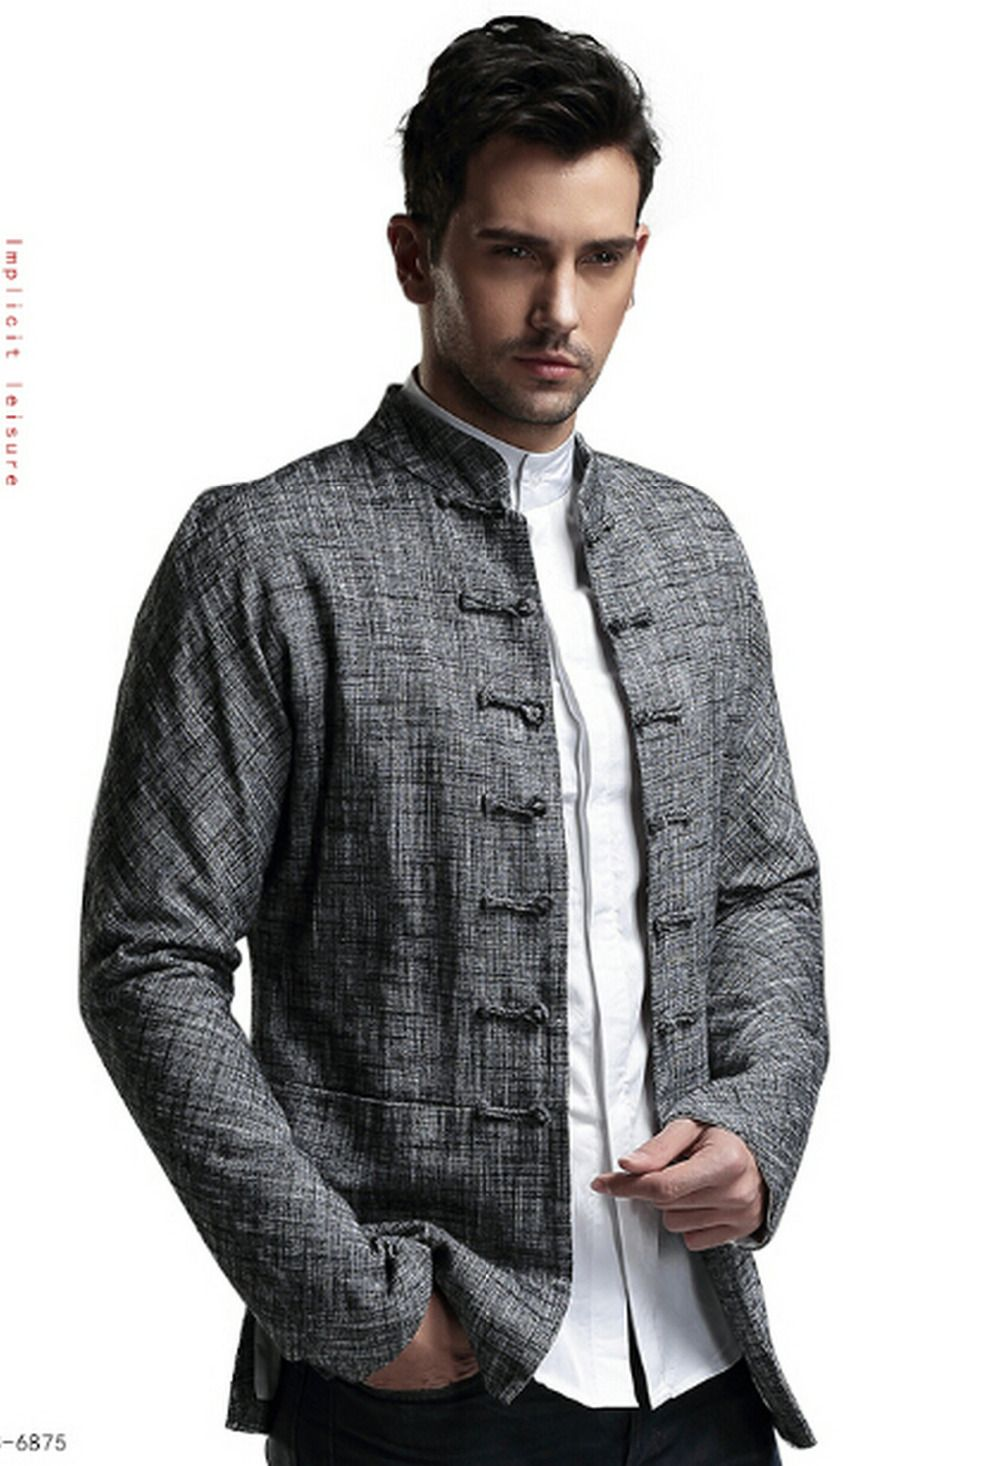 44c4154eb25 Chinese Men's Clothing, Chinese Collar, Chinese Suit, Wedding Shirts, Denim  Coat,